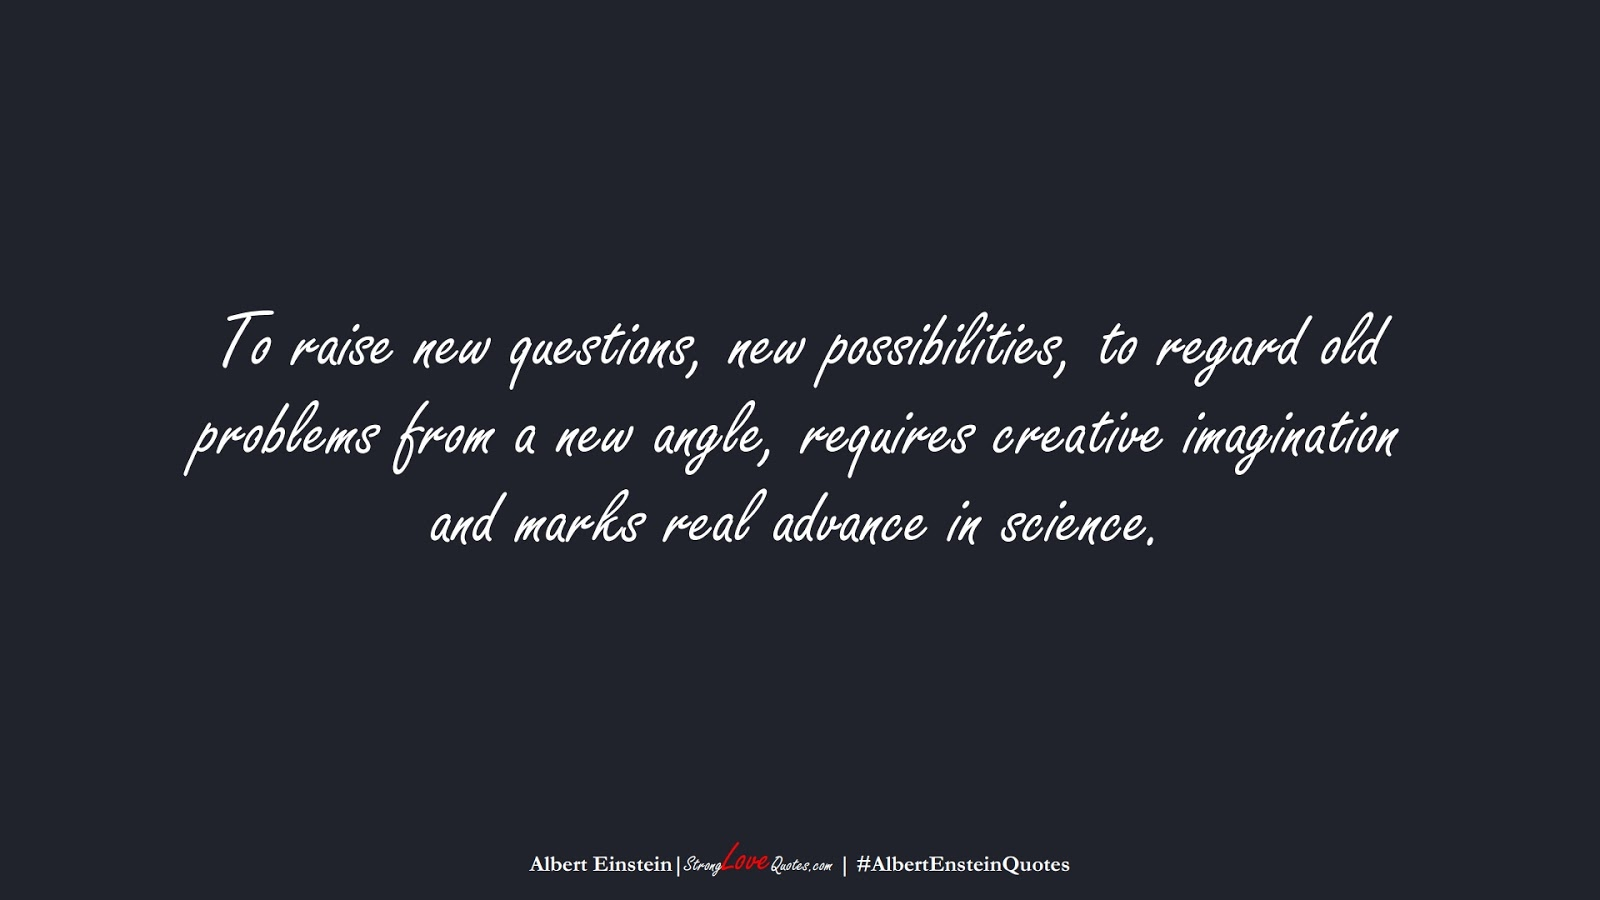 To raise new questions, new possibilities, to regard old problems from a new angle, requires creative imagination and marks real advance in science. (Albert Einstein);  #AlbertEnsteinQuotes